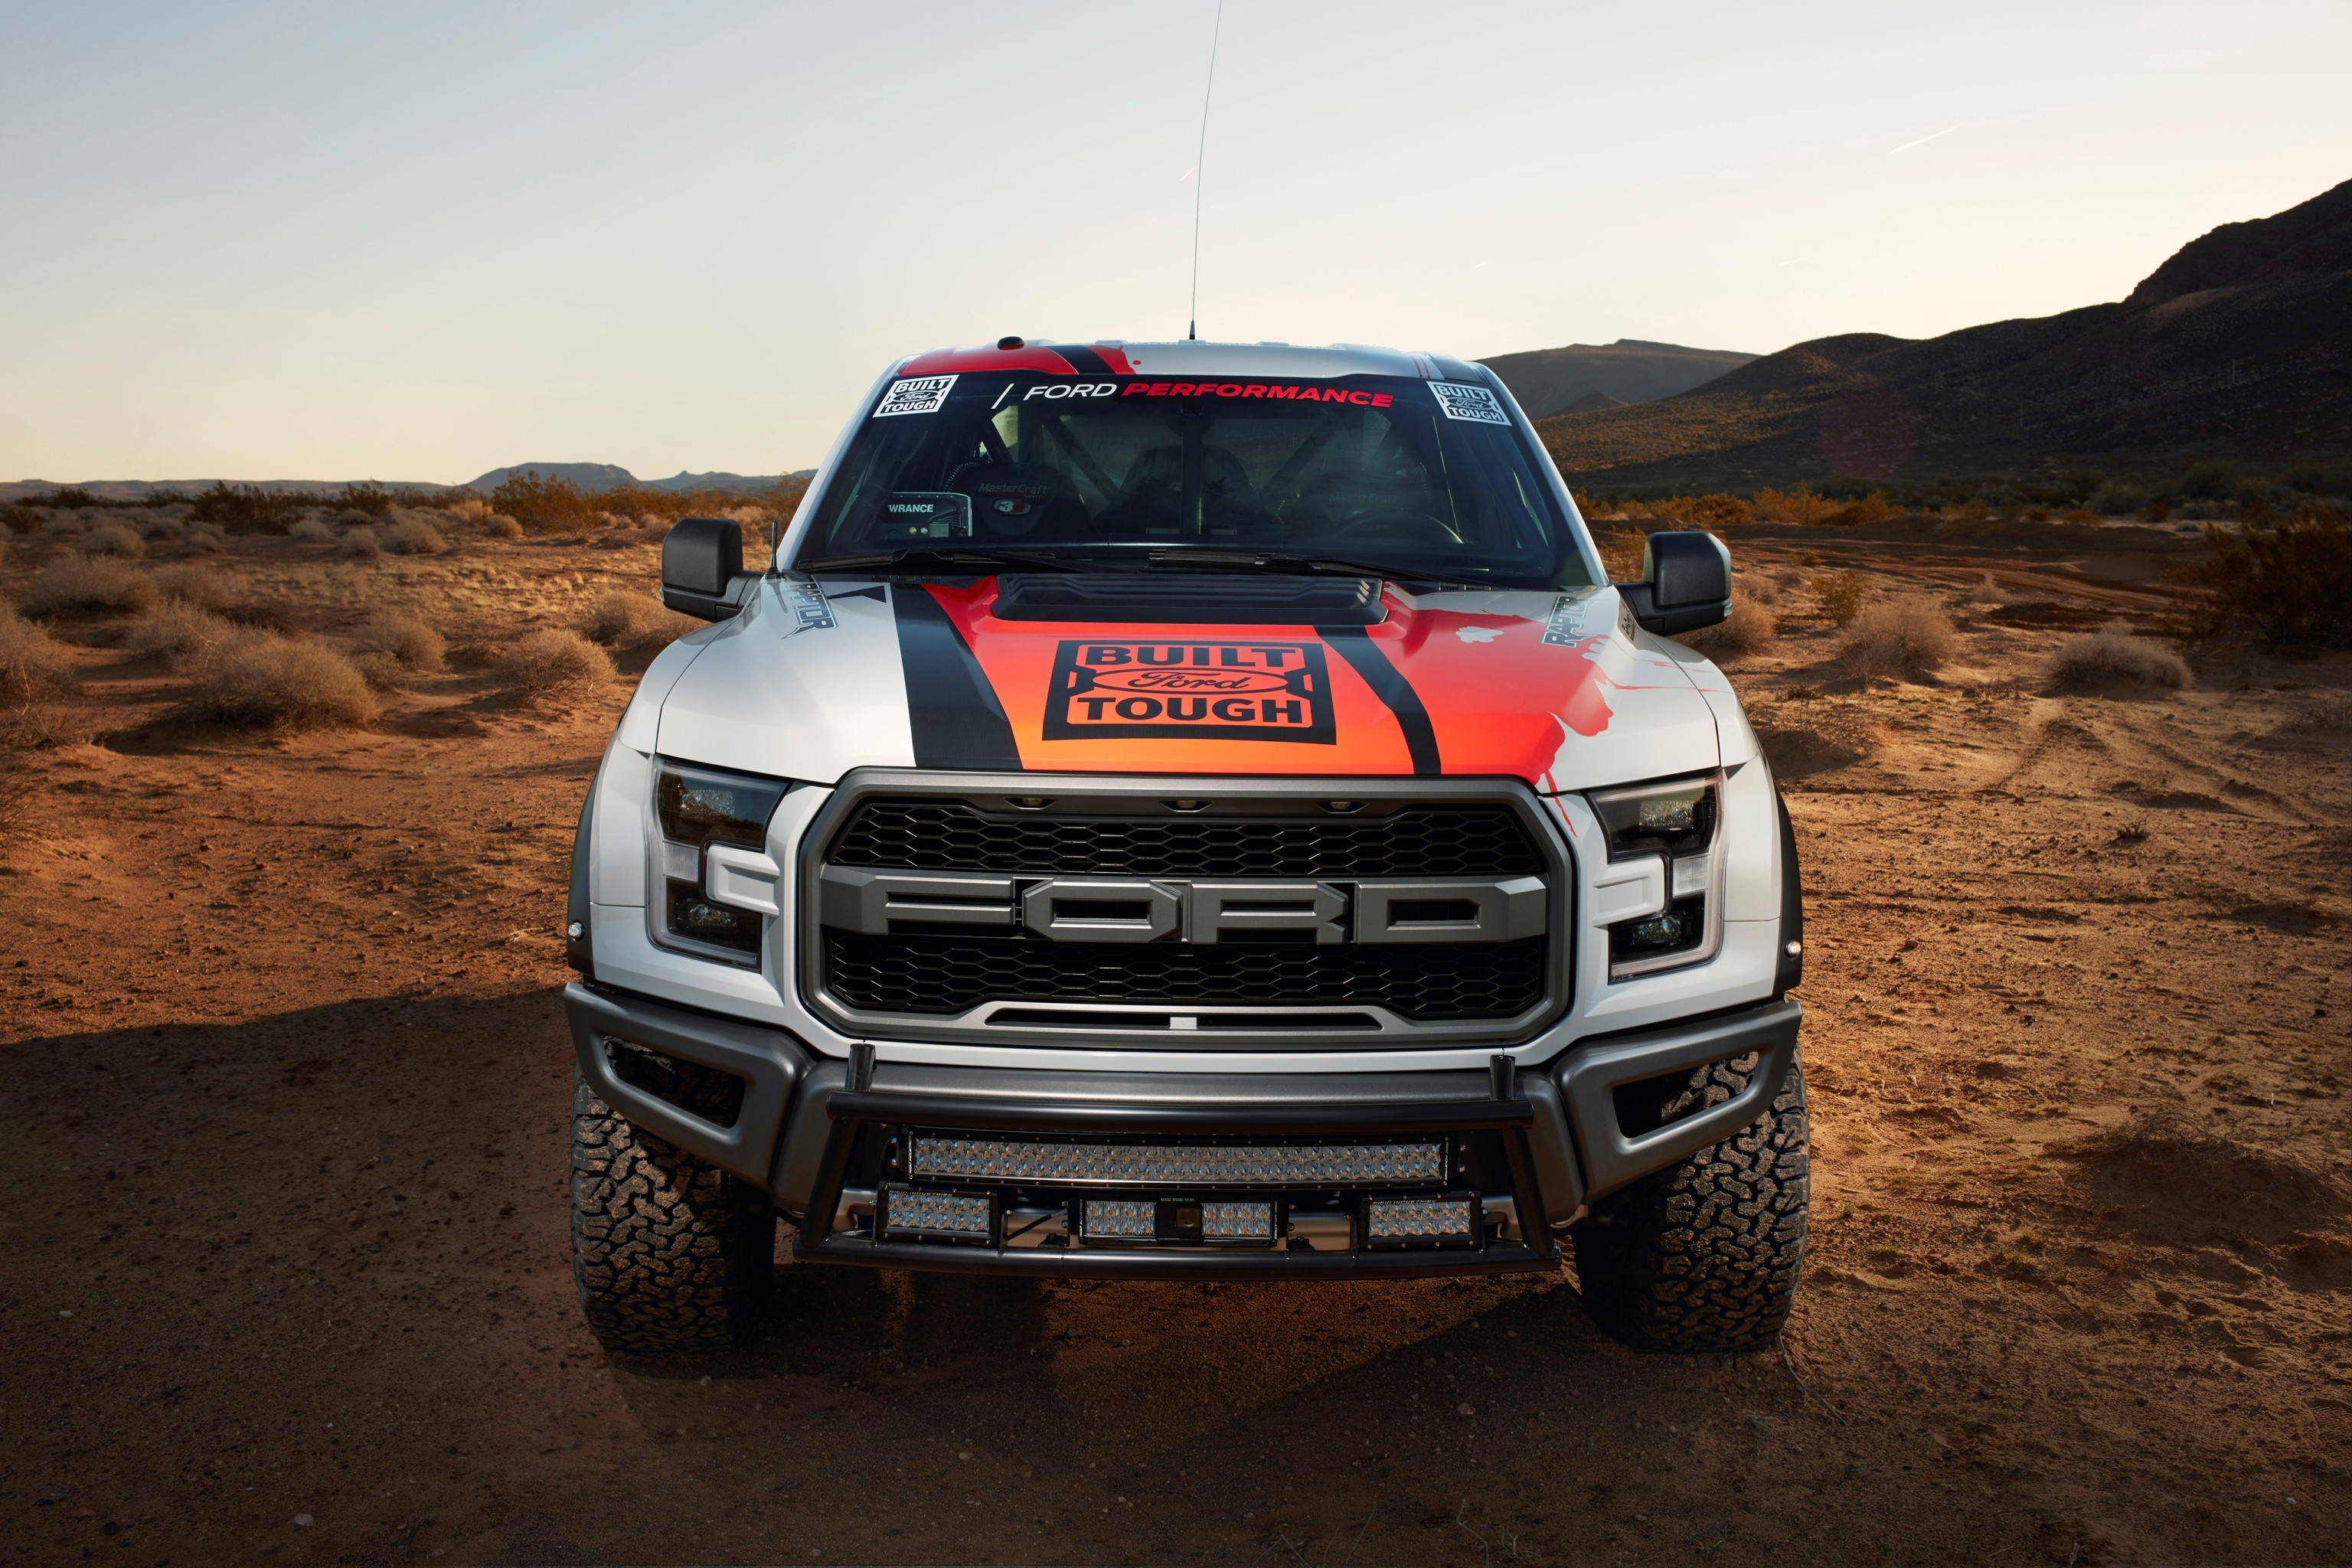 Ford F-150 Raptor Race Truck wallpaper HD. Free desktop background .